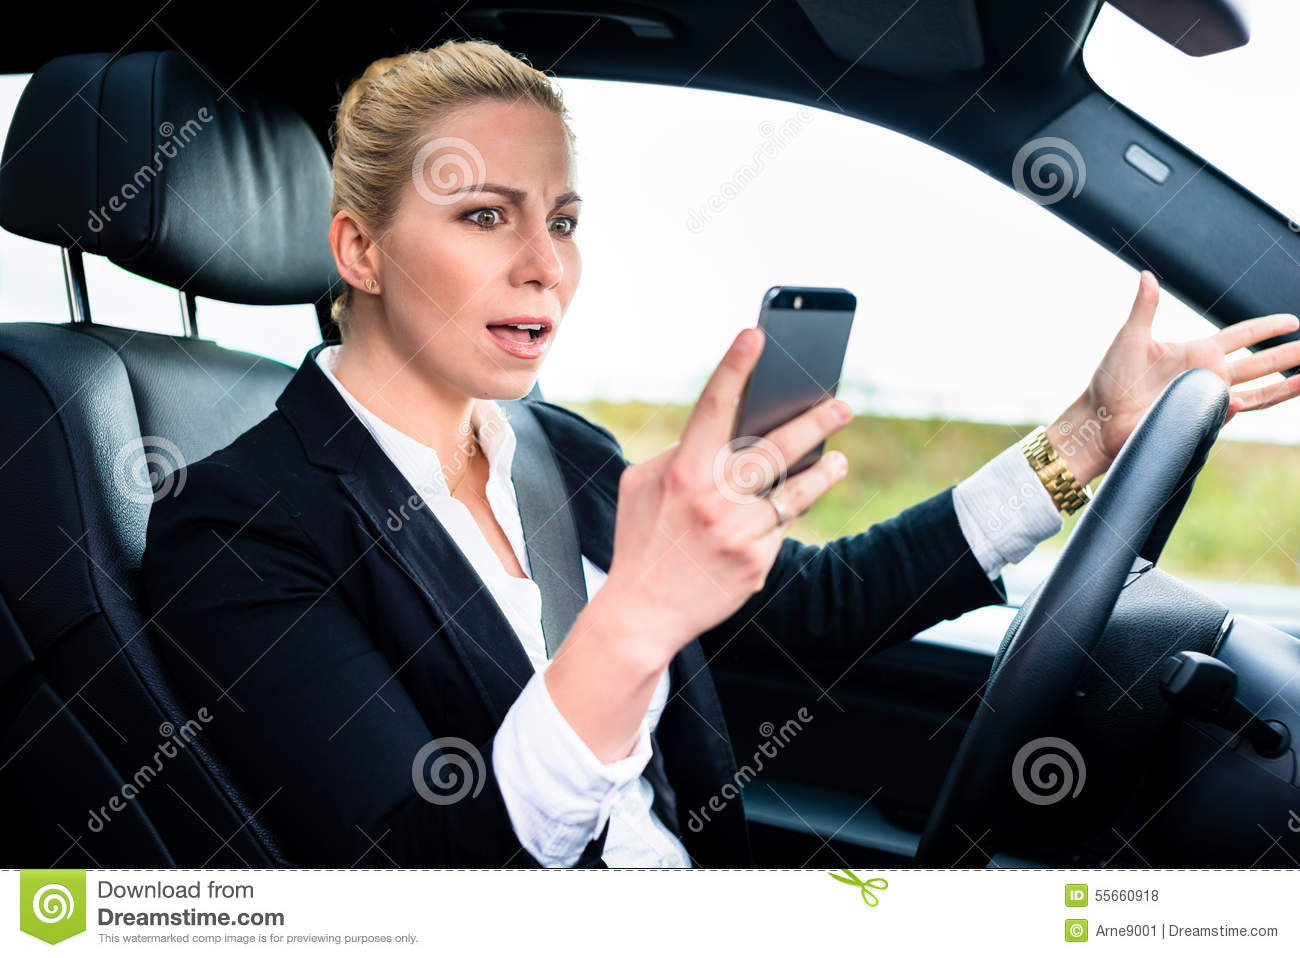 Stock Fotos E Imágenes: Woman Texting While Driving By Car Stock Photo